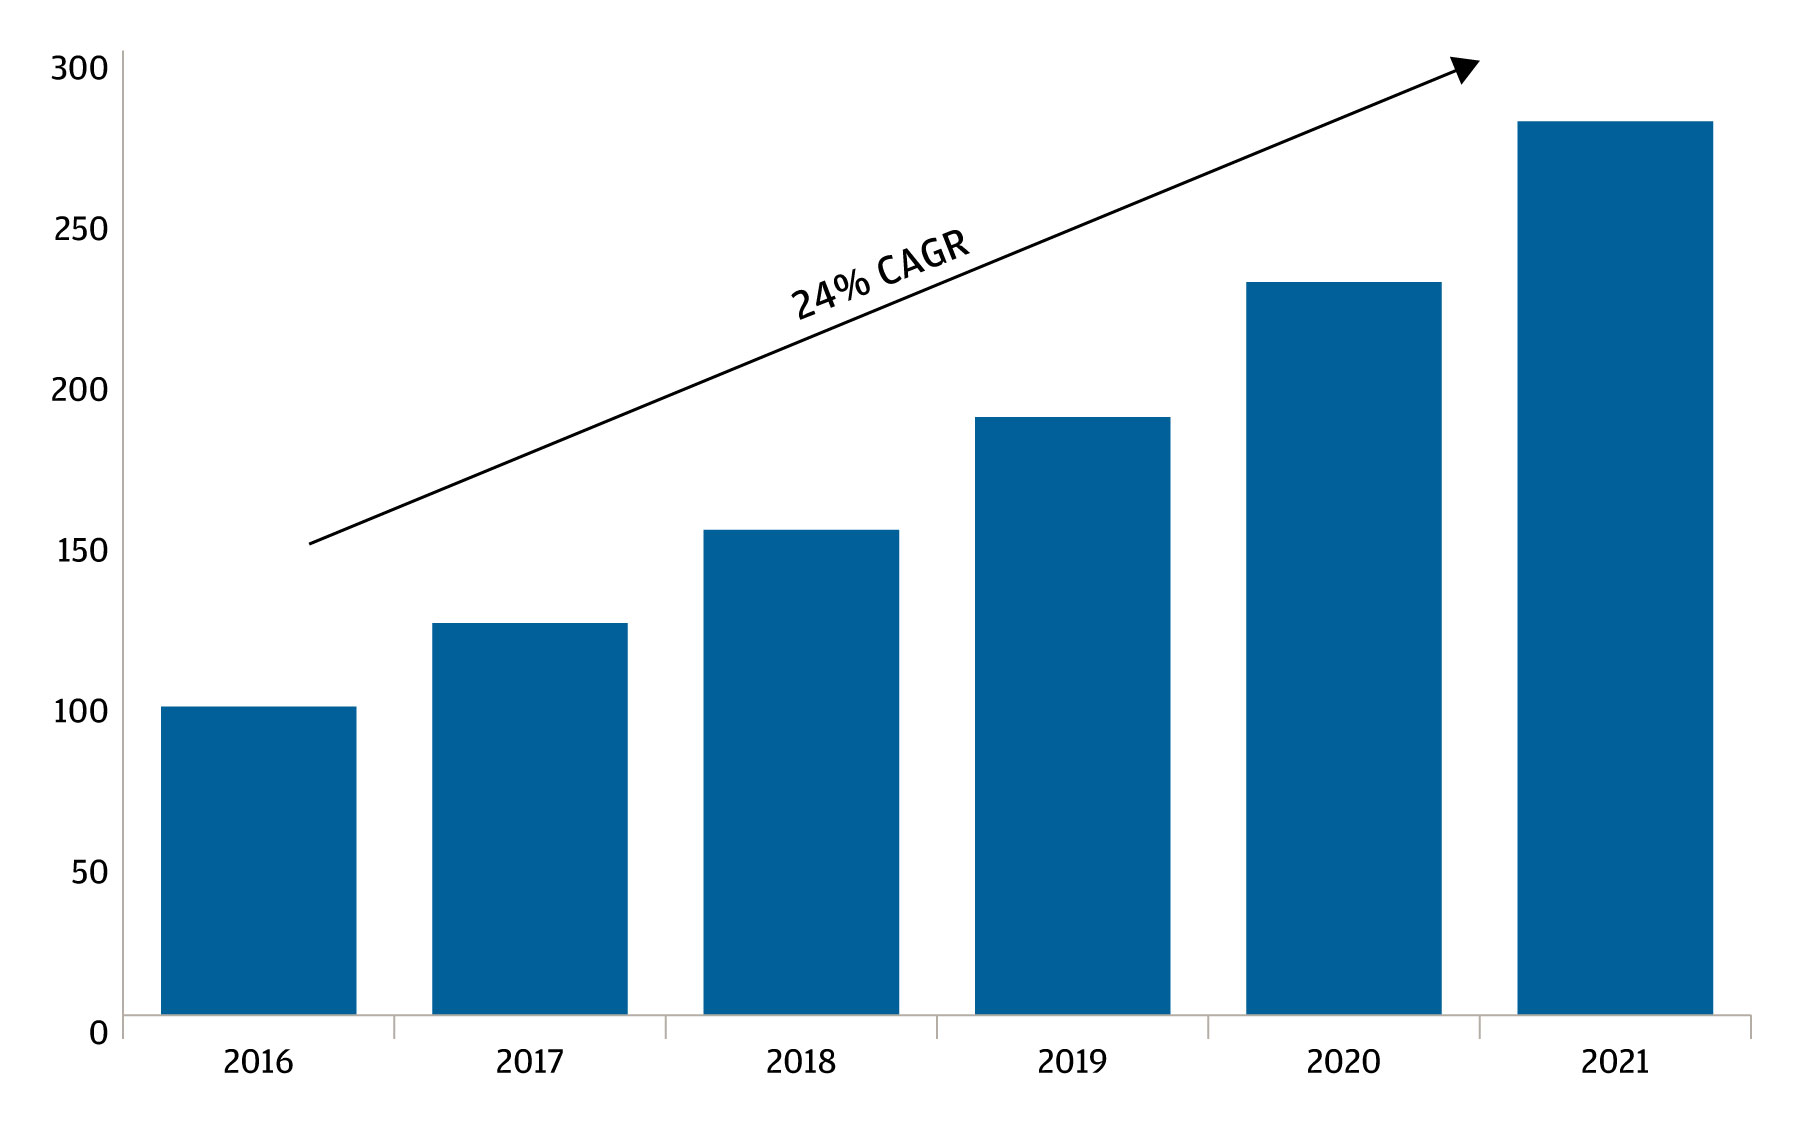 Bar graph showing the expected rise in global data traffic through 2021, to more than 250 exabytes per month.